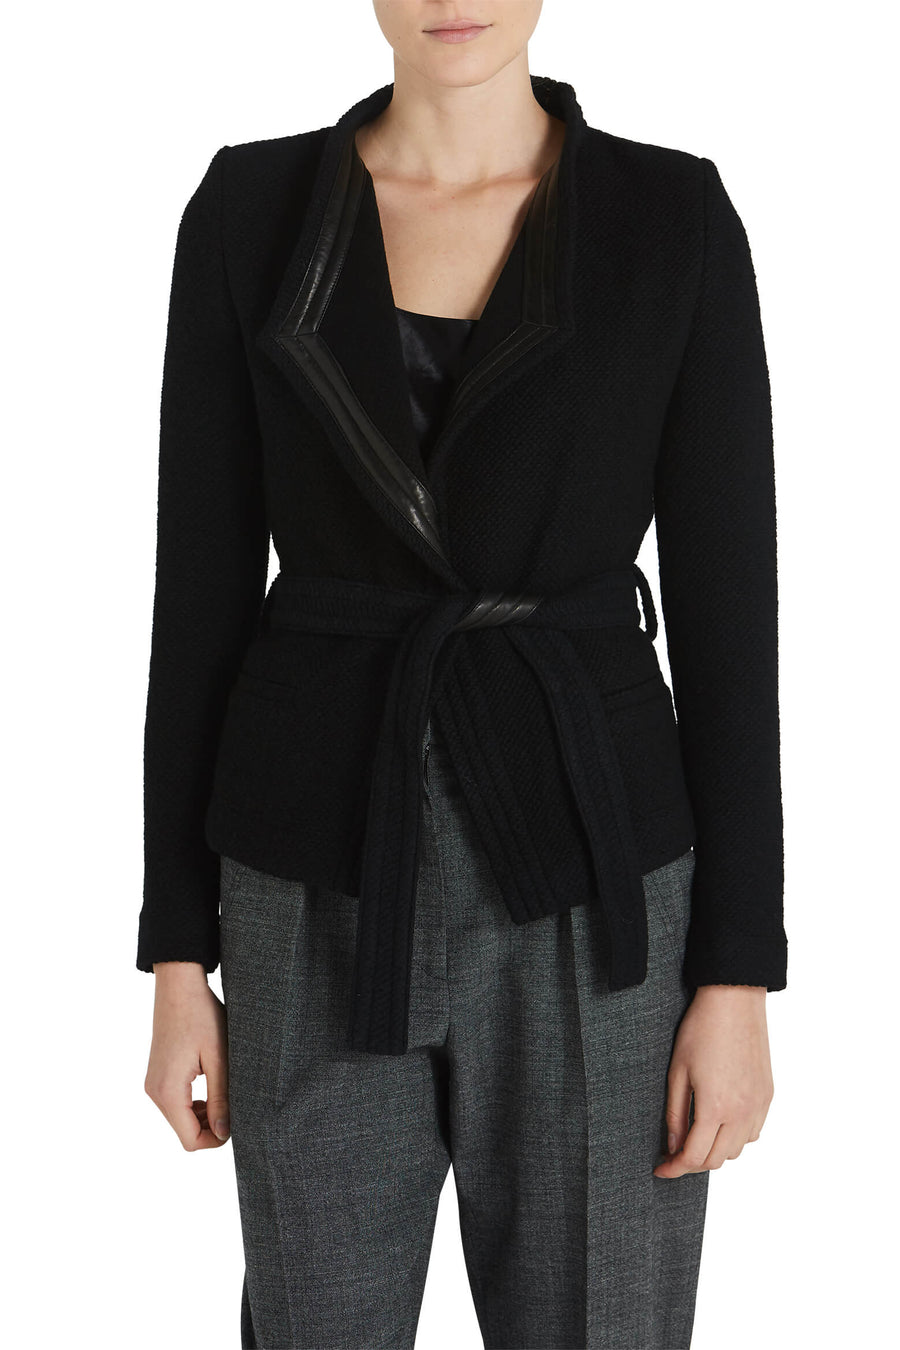 IRO Awa Jacket in black from The New Trend